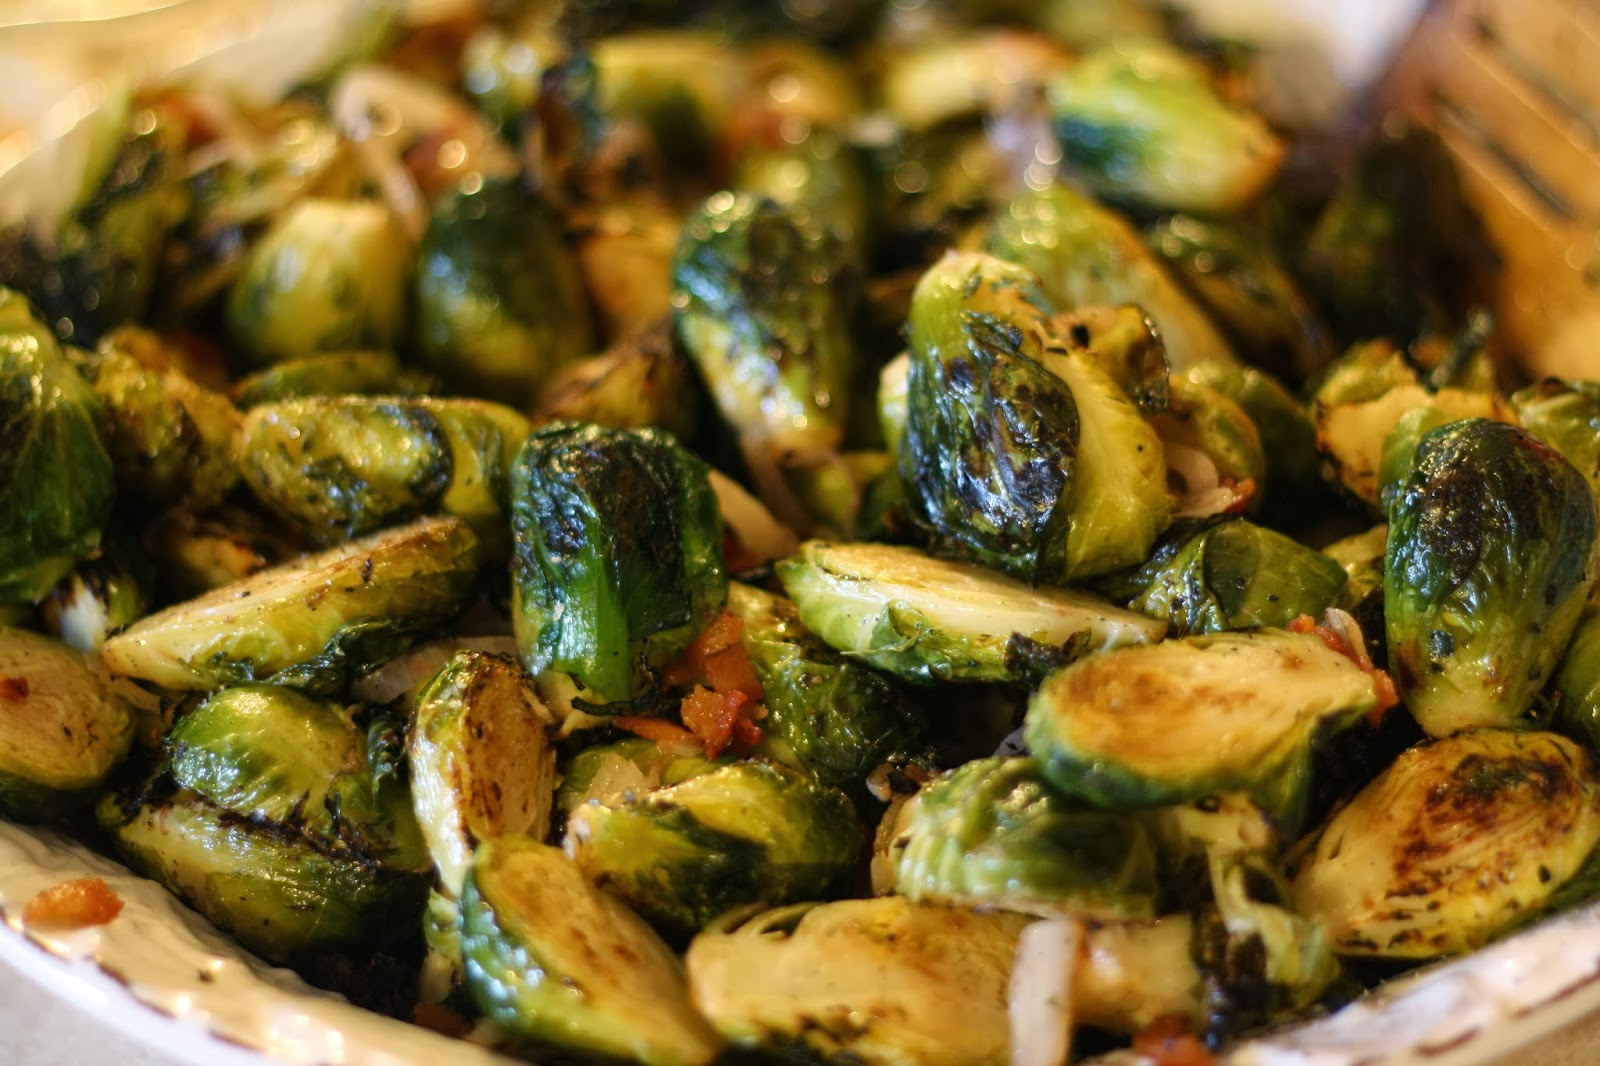 ... According to Ruth: Grilled Brussels Sprouts with Bacon and Shallots